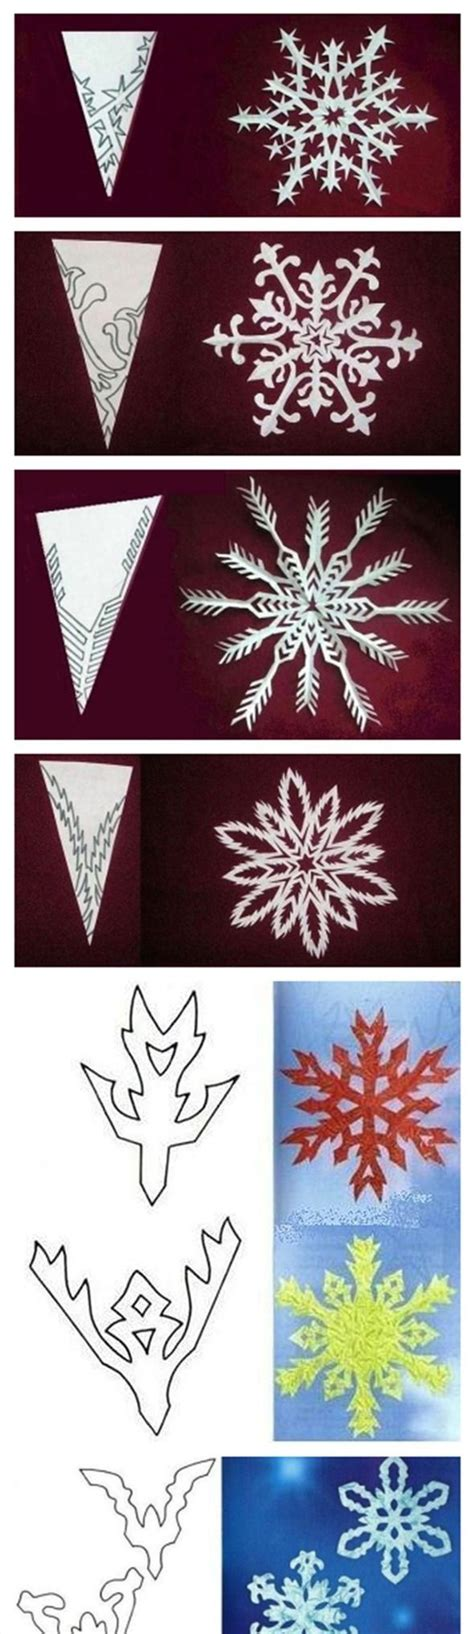 For Paper Snowflakes - paper snowflake patterns ideas